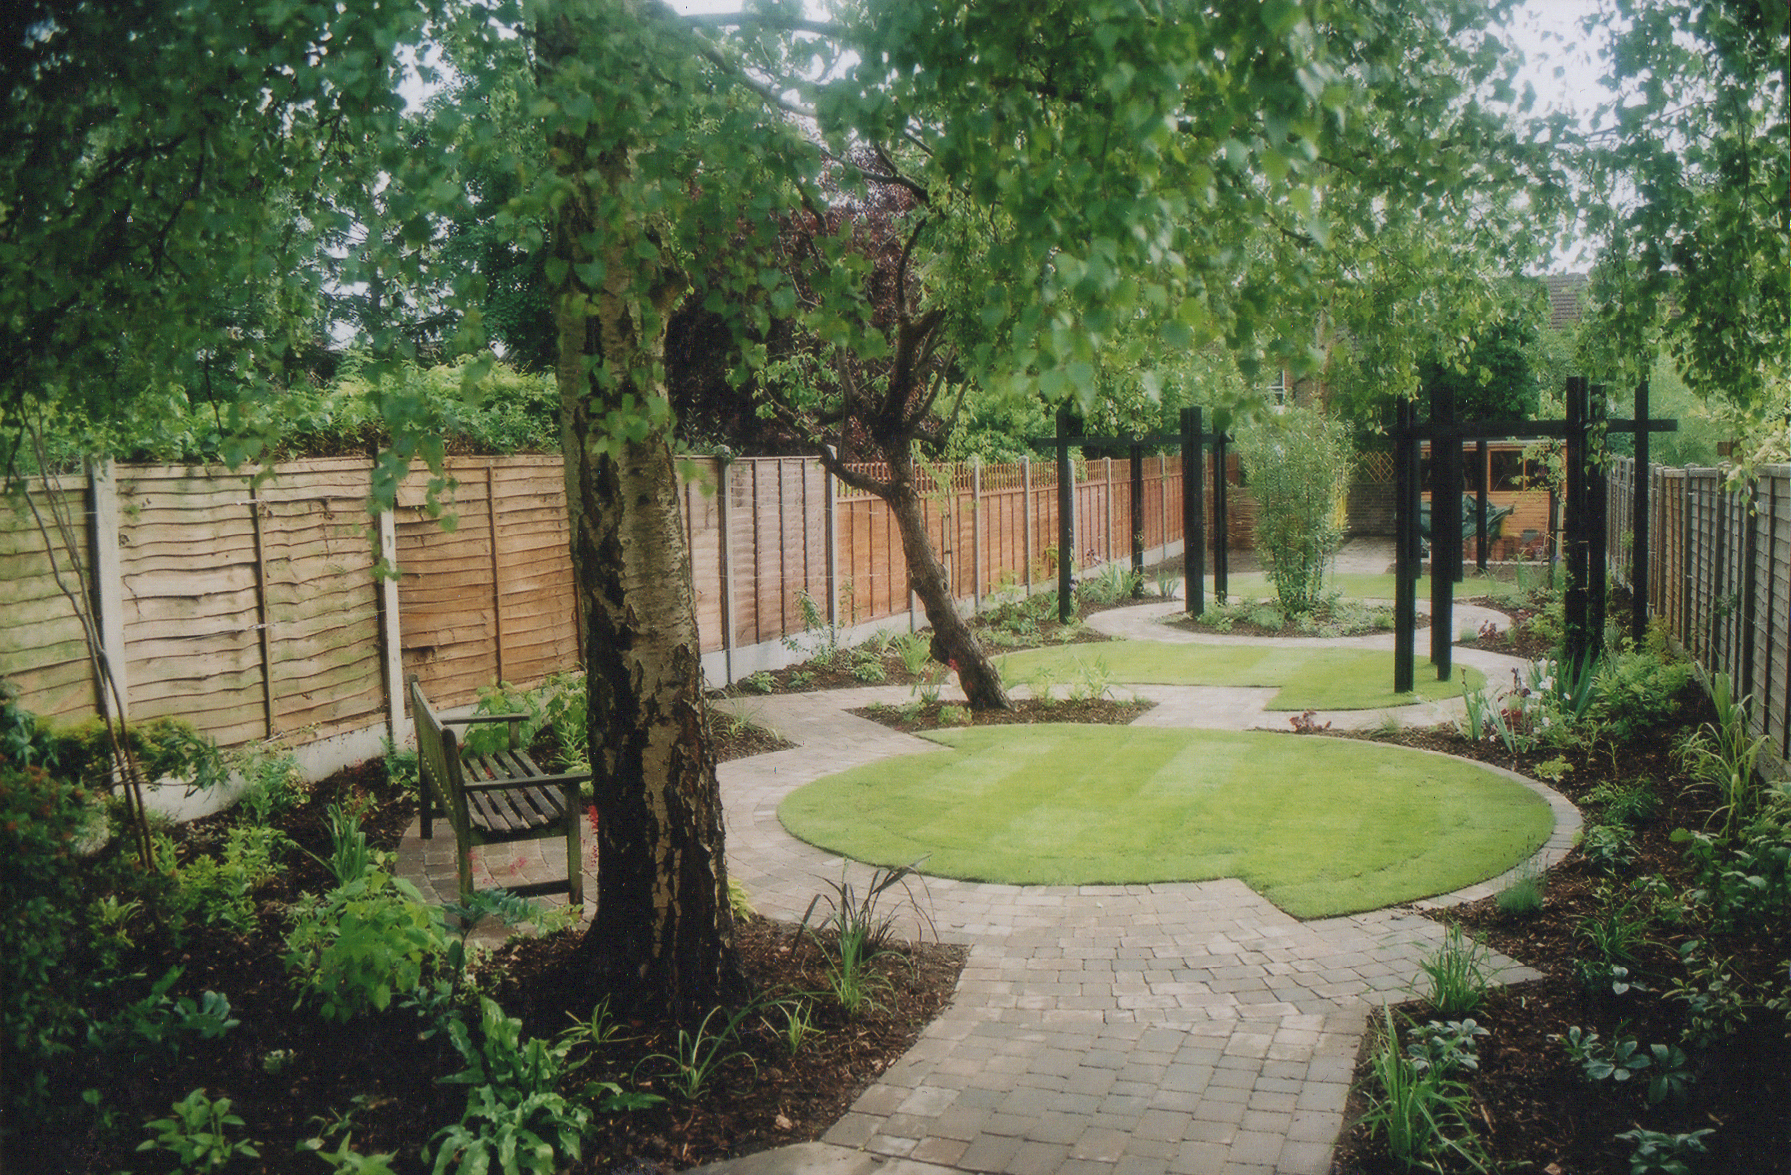 Landscaping has just been completed on this town garden in ...